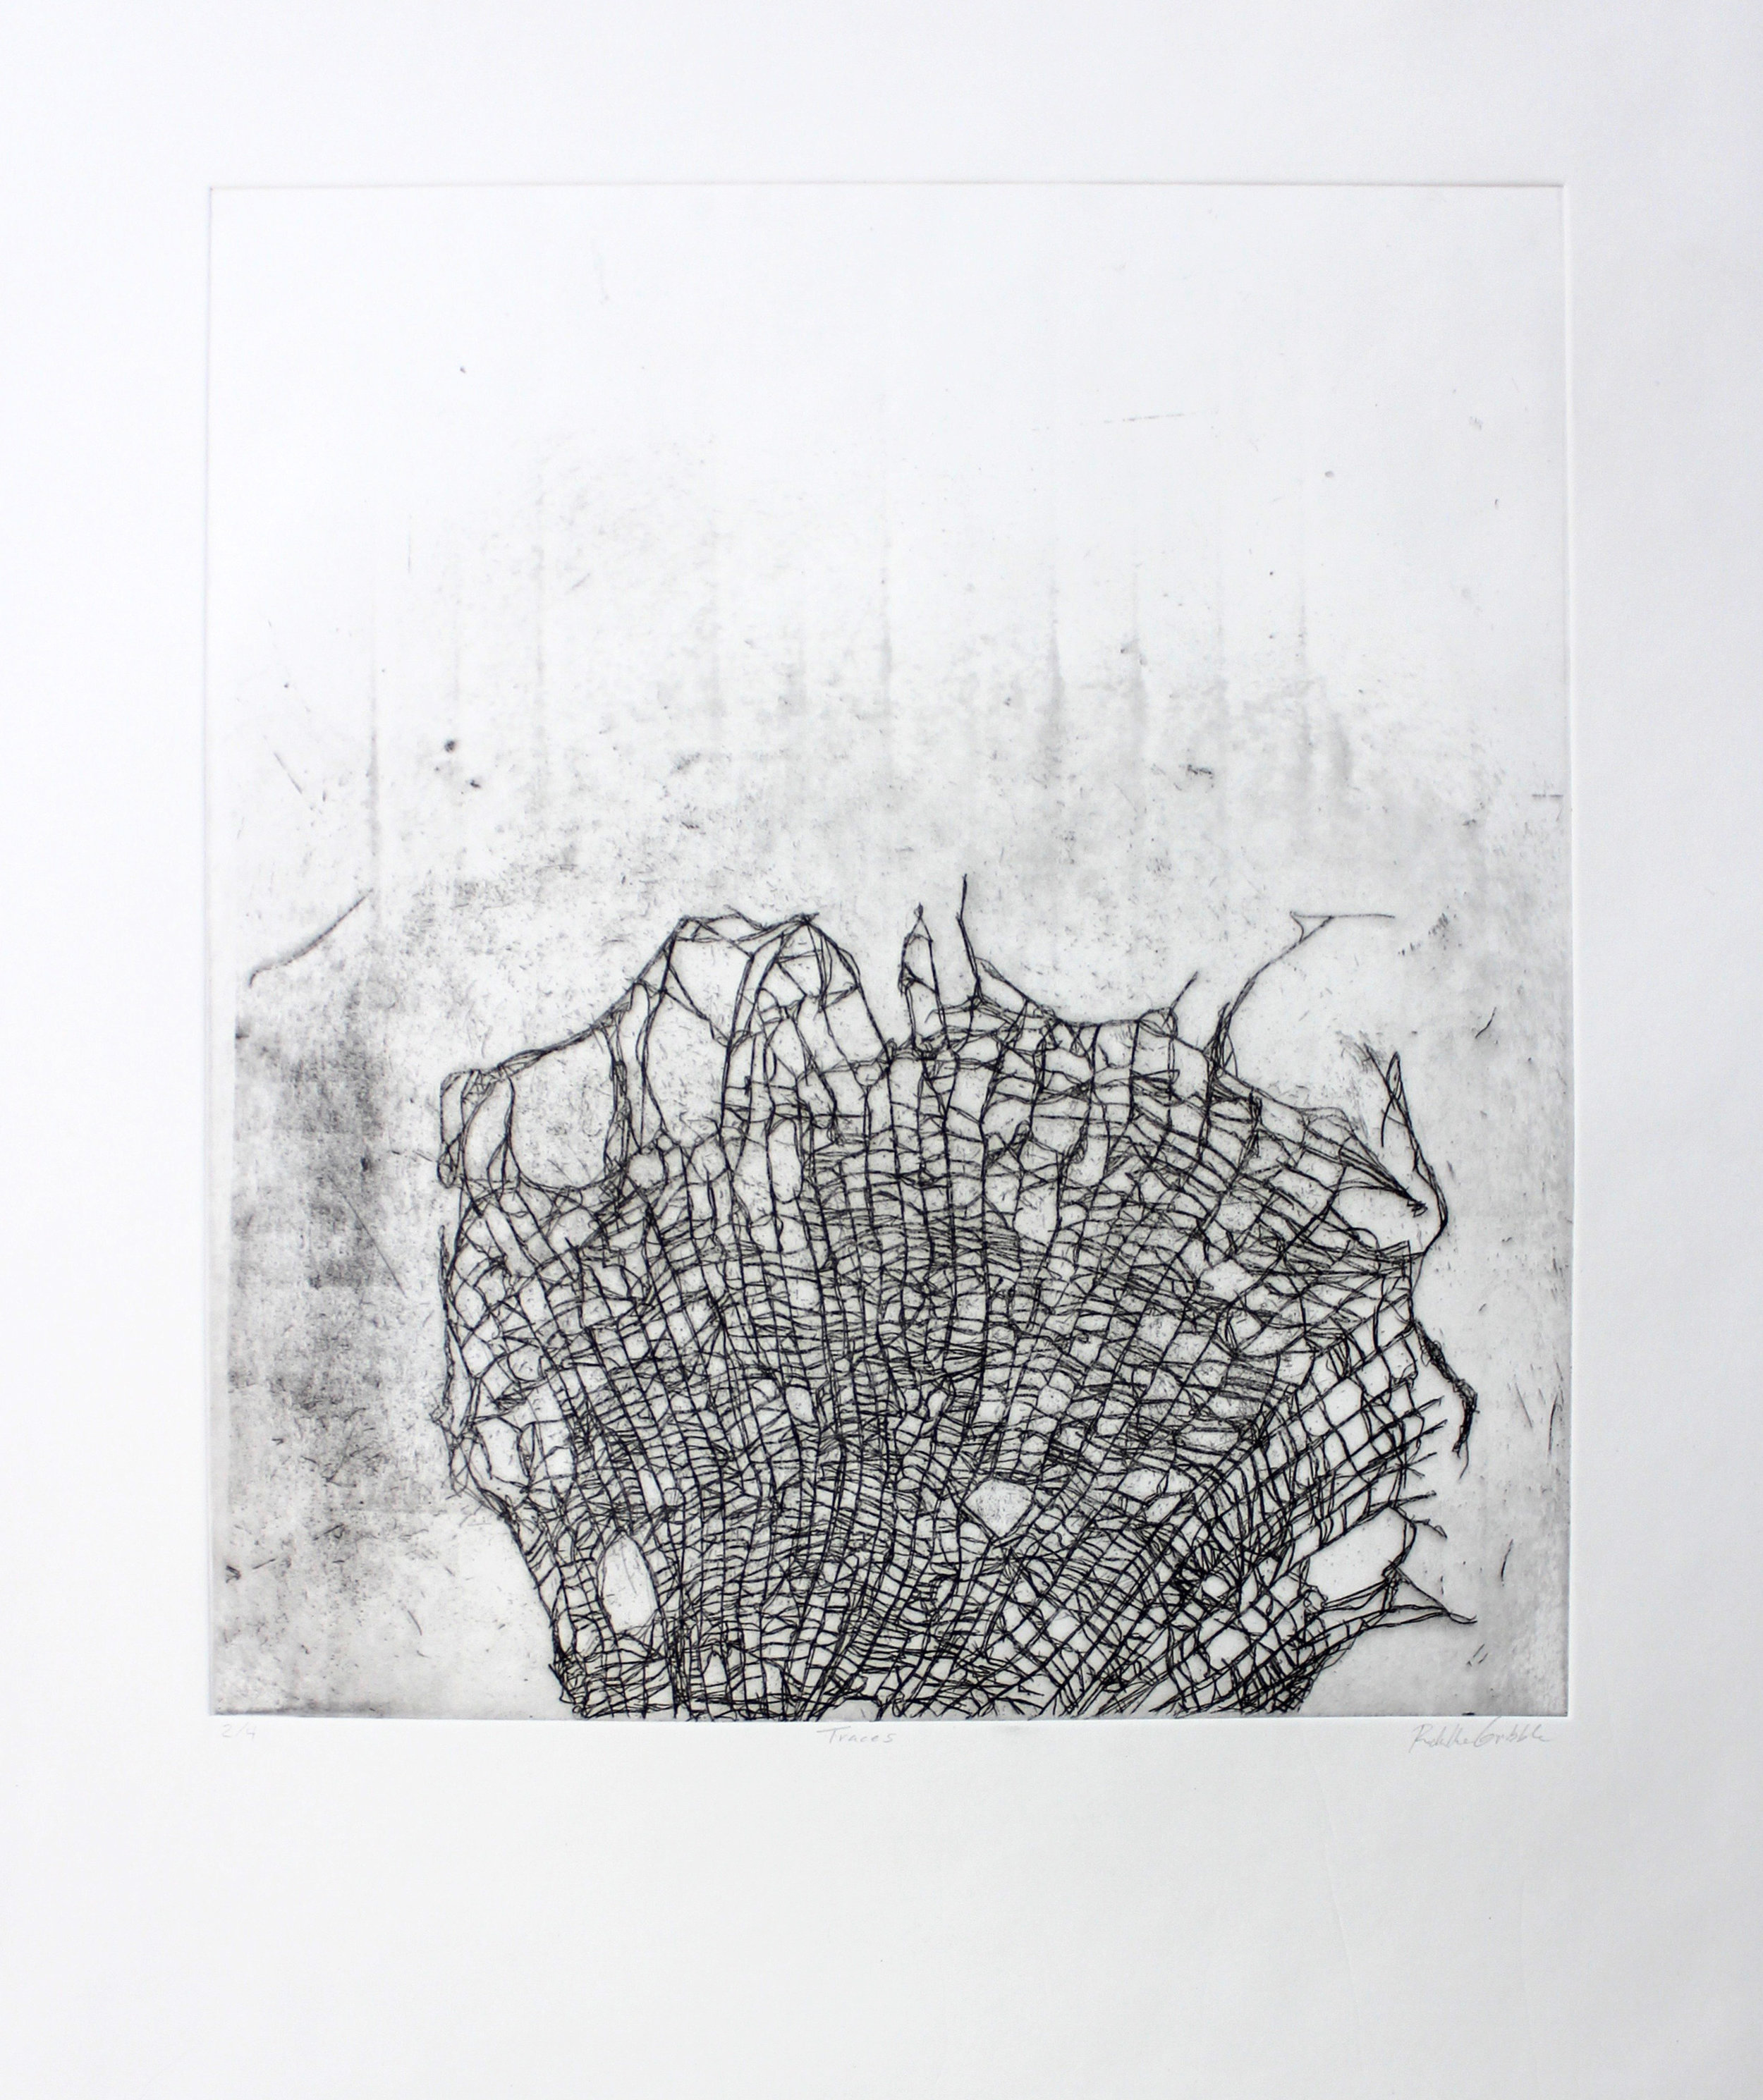 Traces, Hard-ground etching on copper on mitsumama washi, 22.5 x 19 inches, 2018